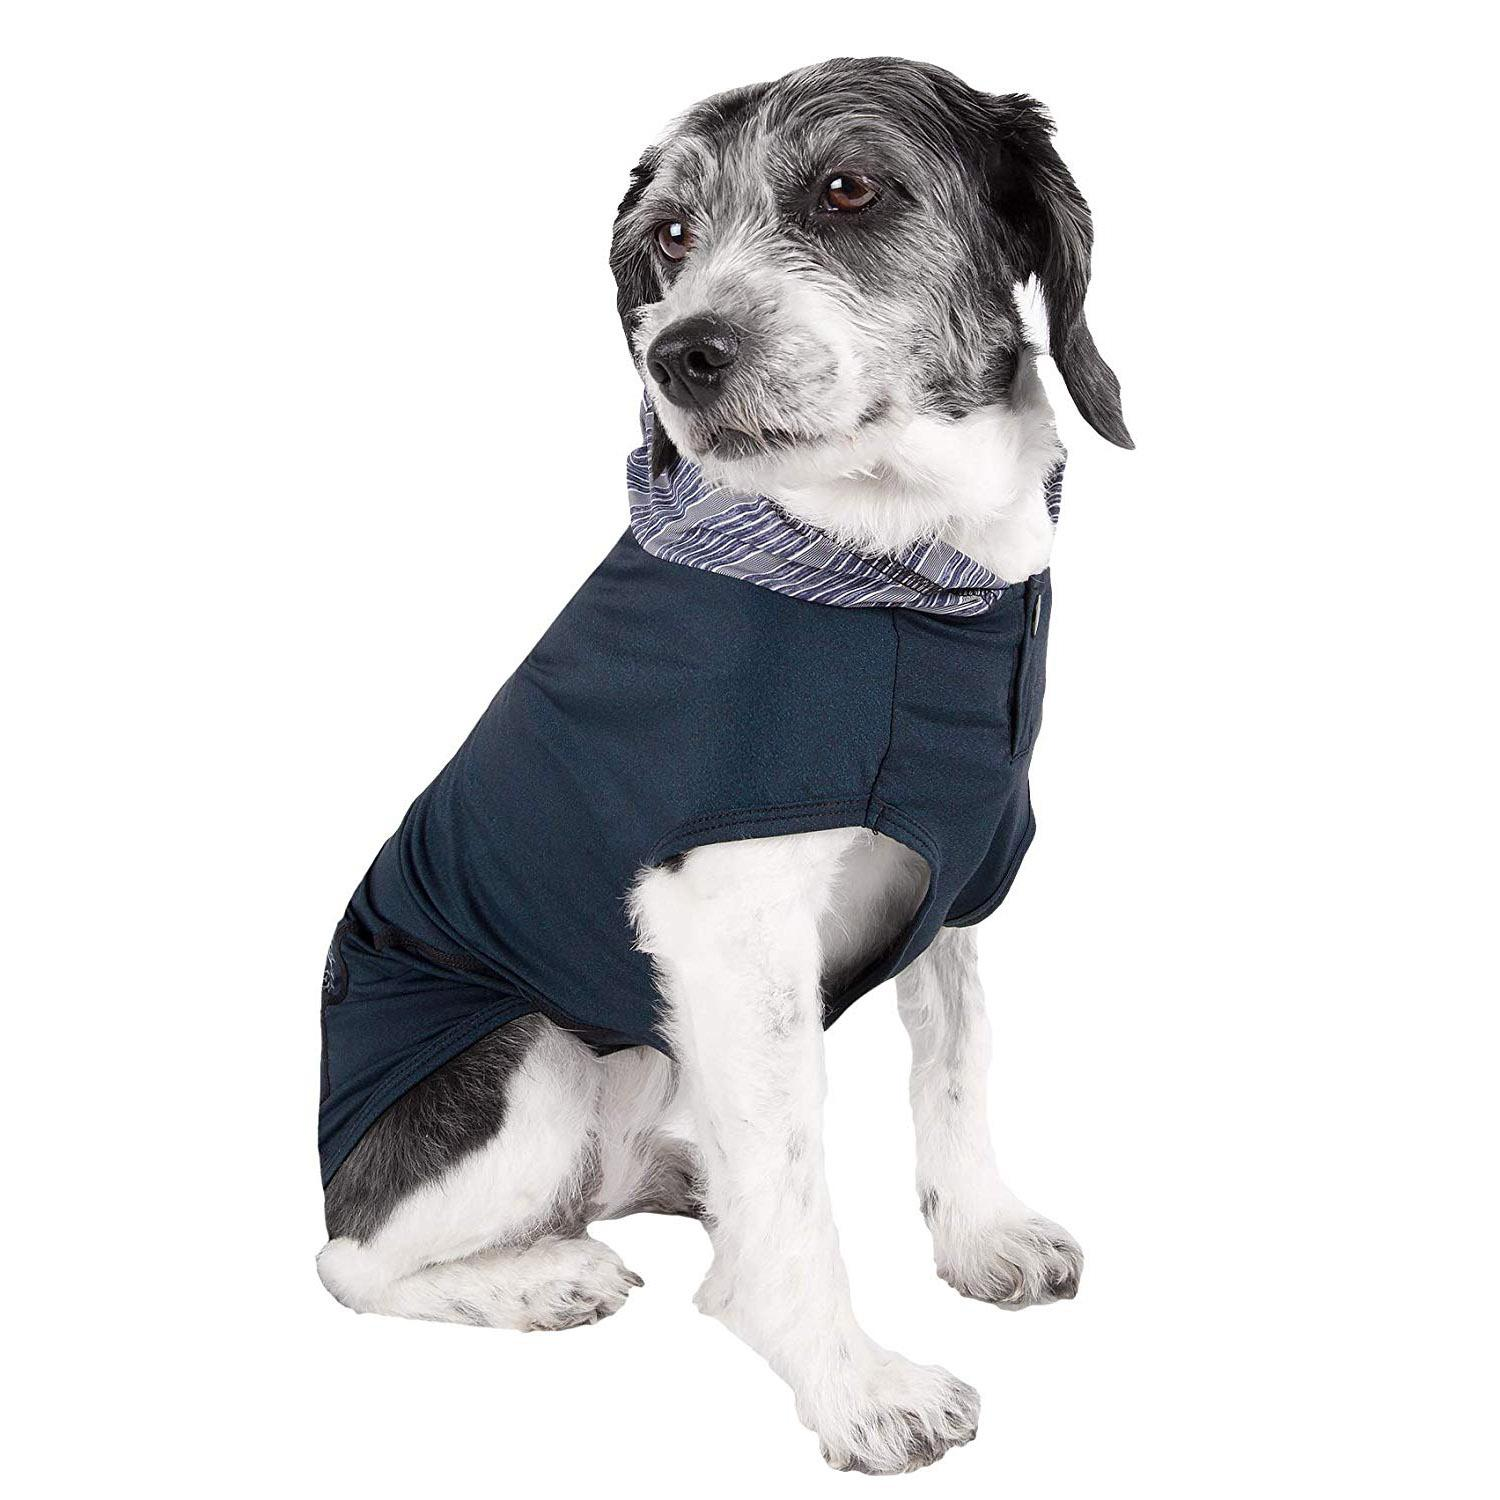 Pet Life ACTIVE 'Pull-Rover' Performance Sleeveless Dog Hoodie - Dark Teal